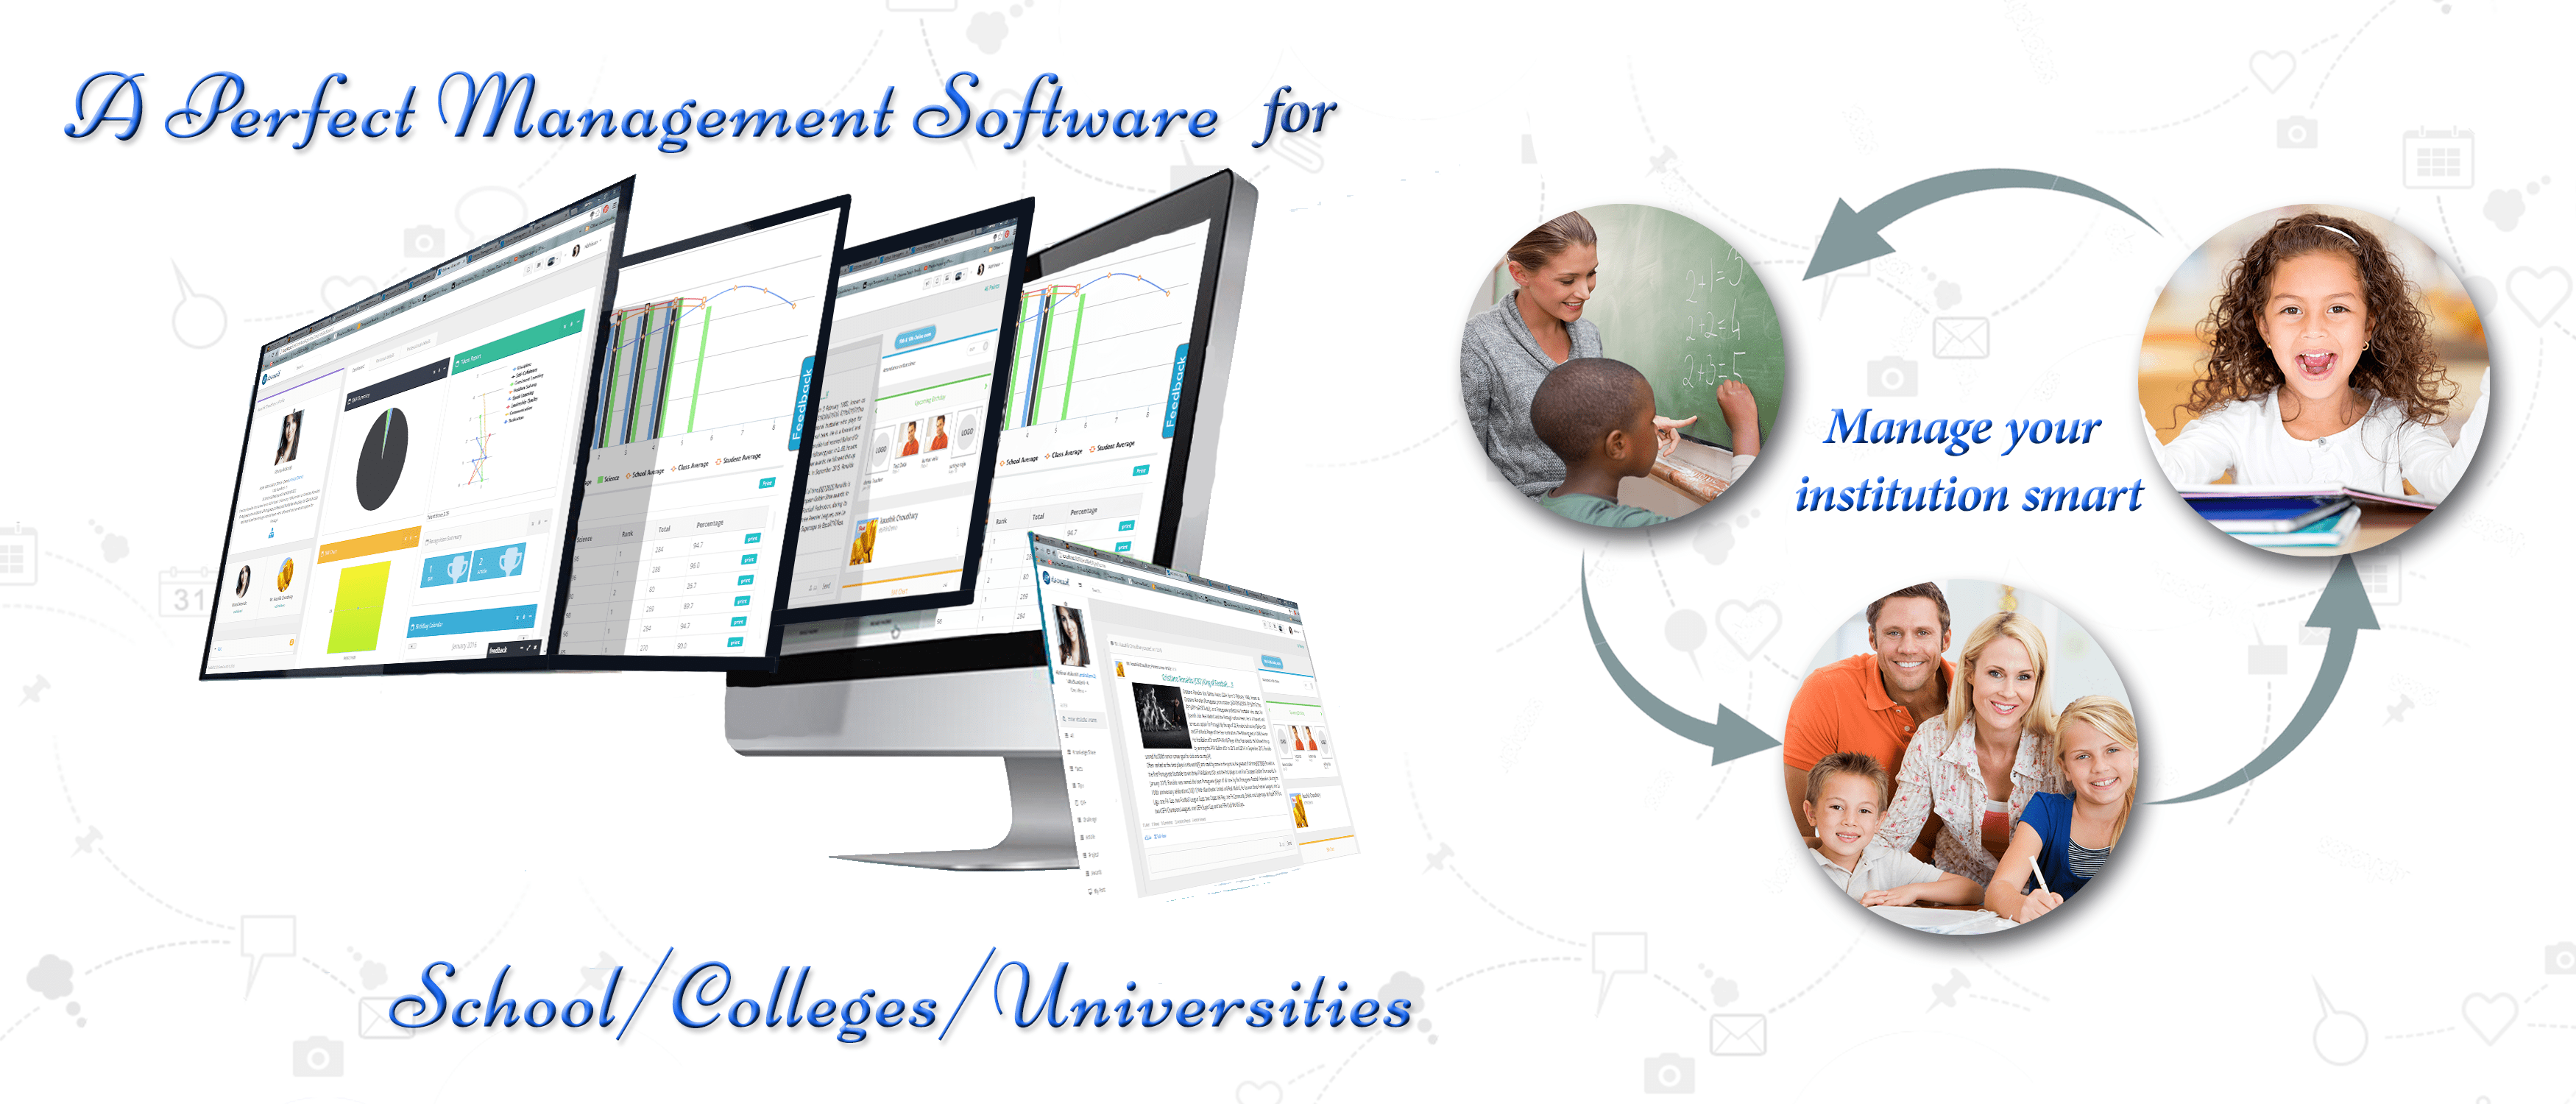 A Complete School Management Software for free